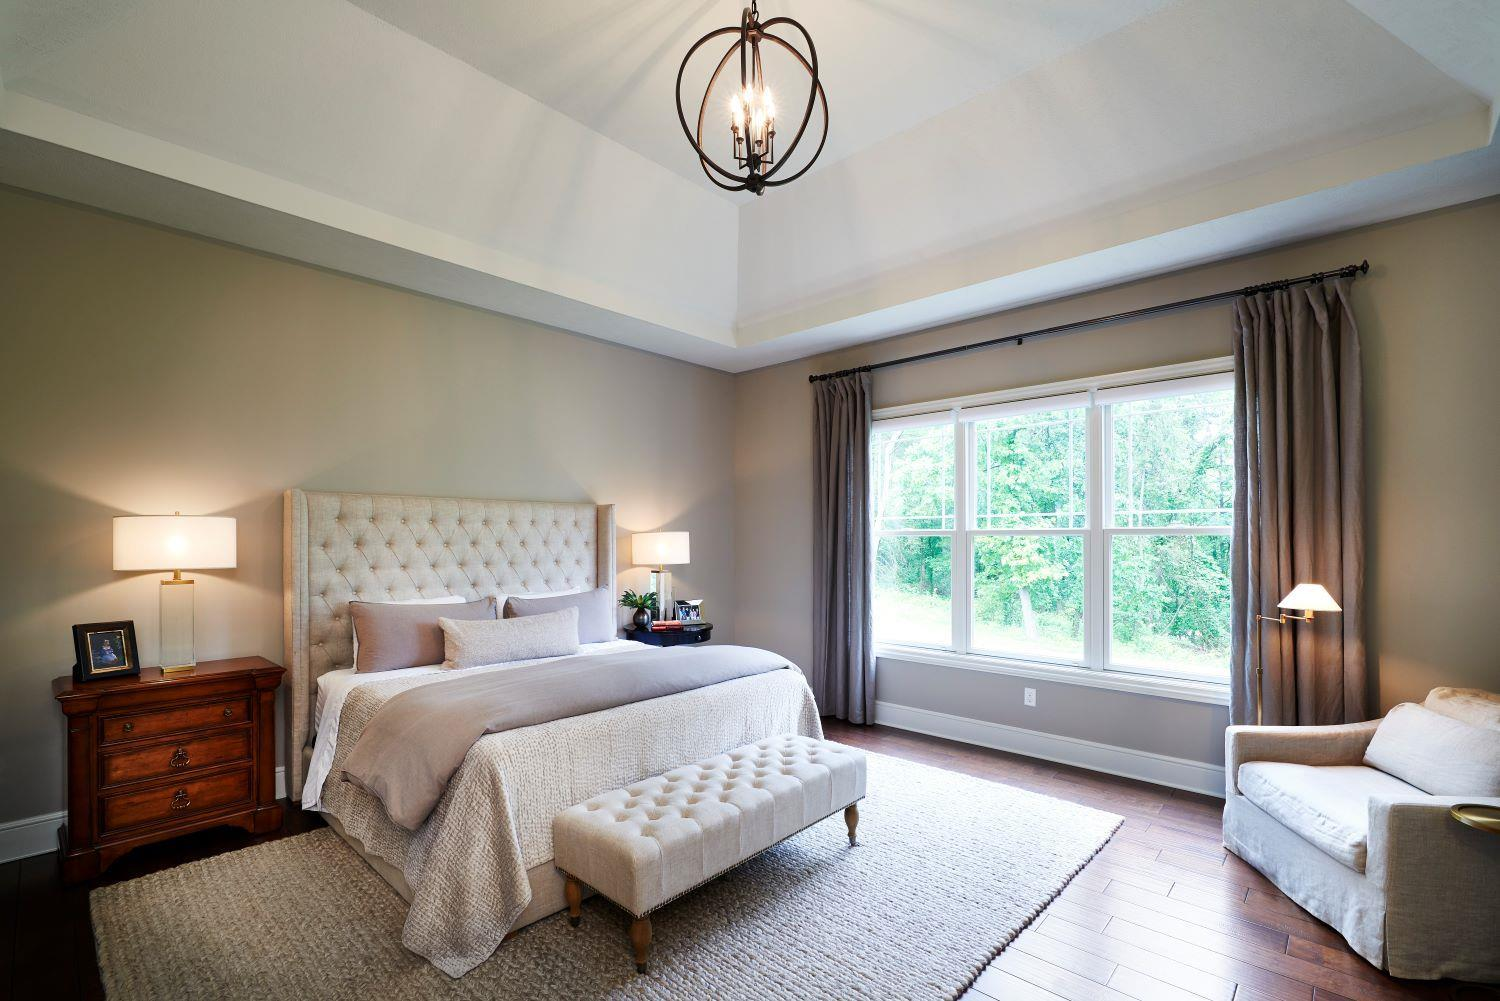 Bedroom featured in the Victoria By Eddy Homes in Pittsburgh, PA